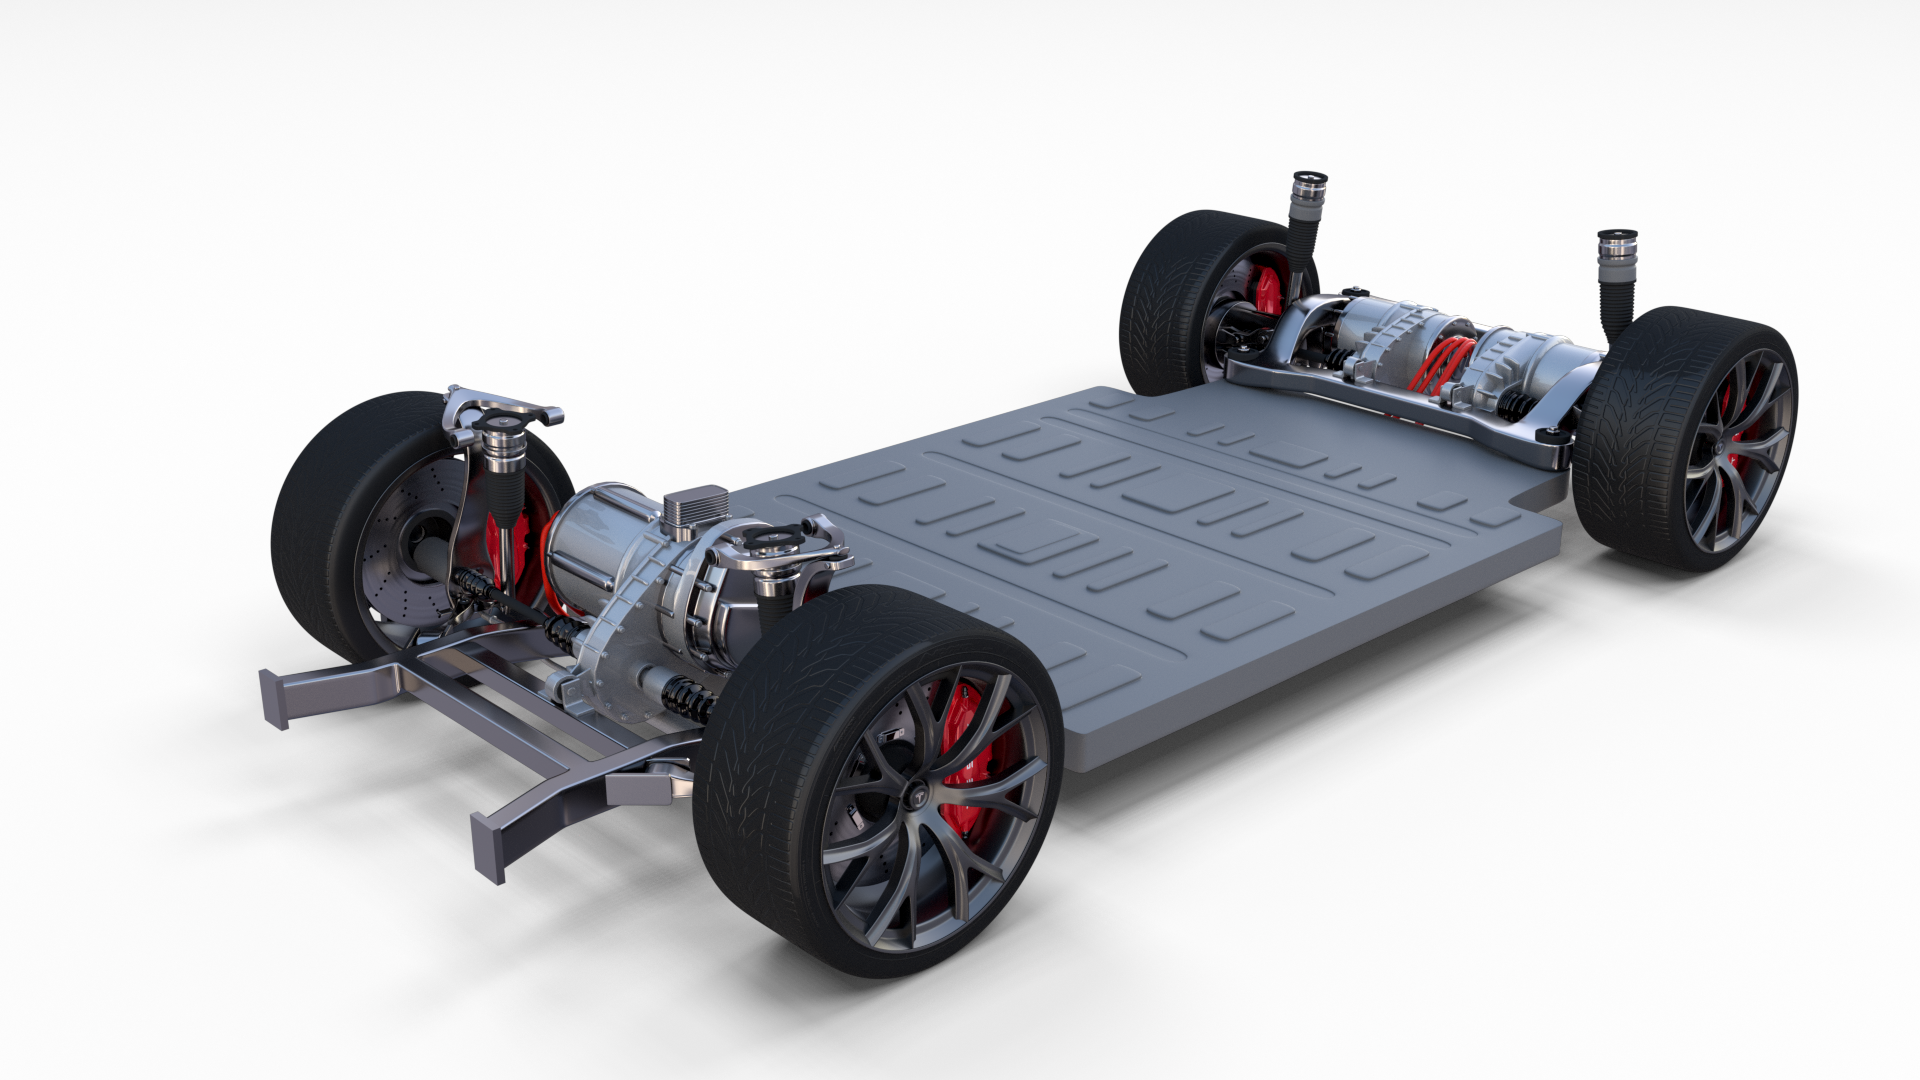 Tesla Roadster 2020 Midnight Silver With Interior And Chassis Roadster Tesla Midnight Chassis Tesla Roadster Car Roadsters